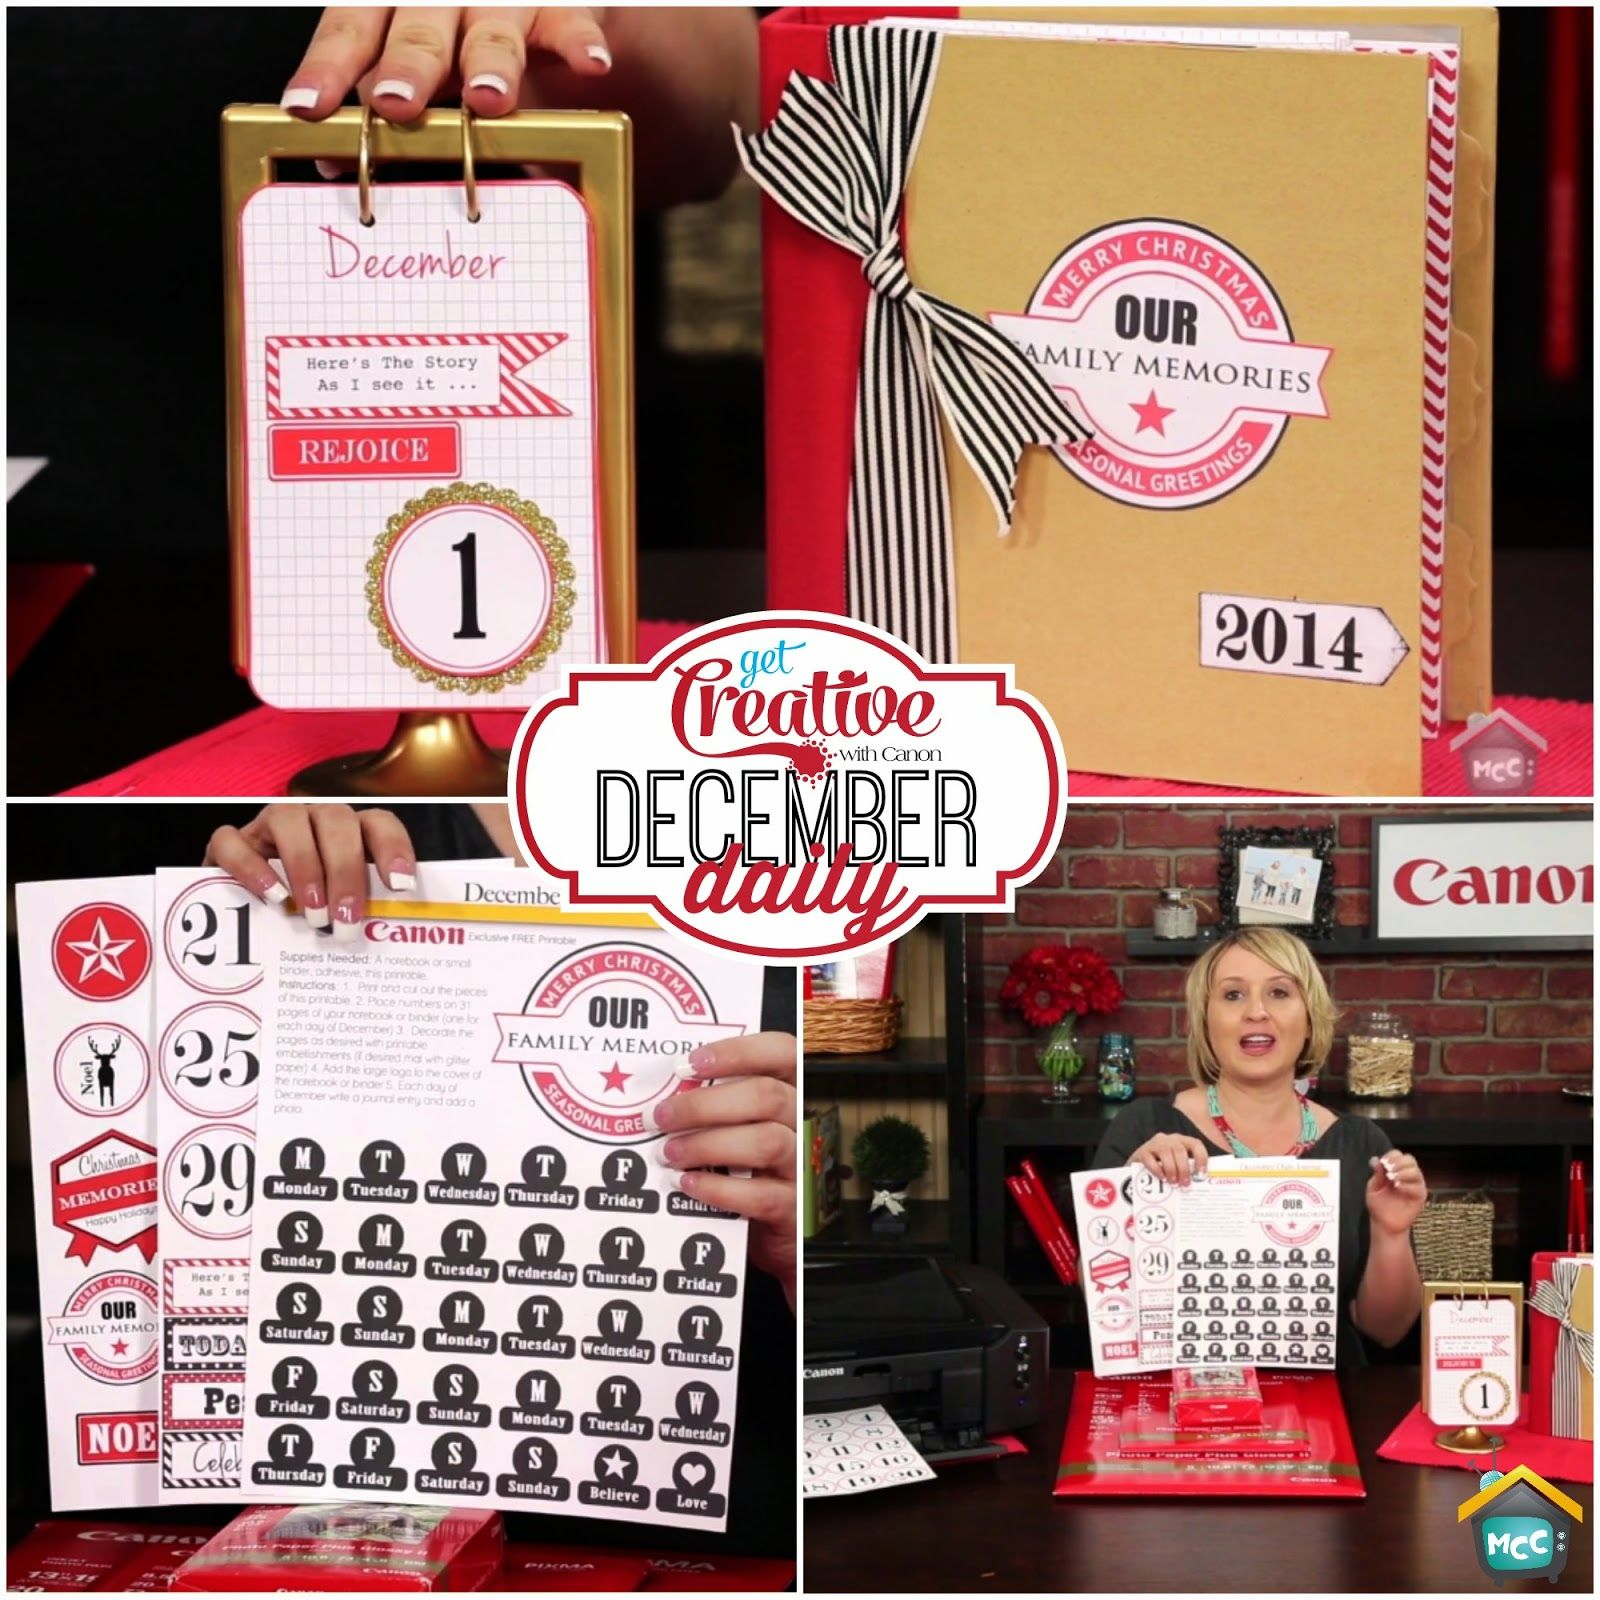 My Craft Channel: Nov. 18th: Canon's December Daily, Free Printable and December Daily Project Kit Featured Buy